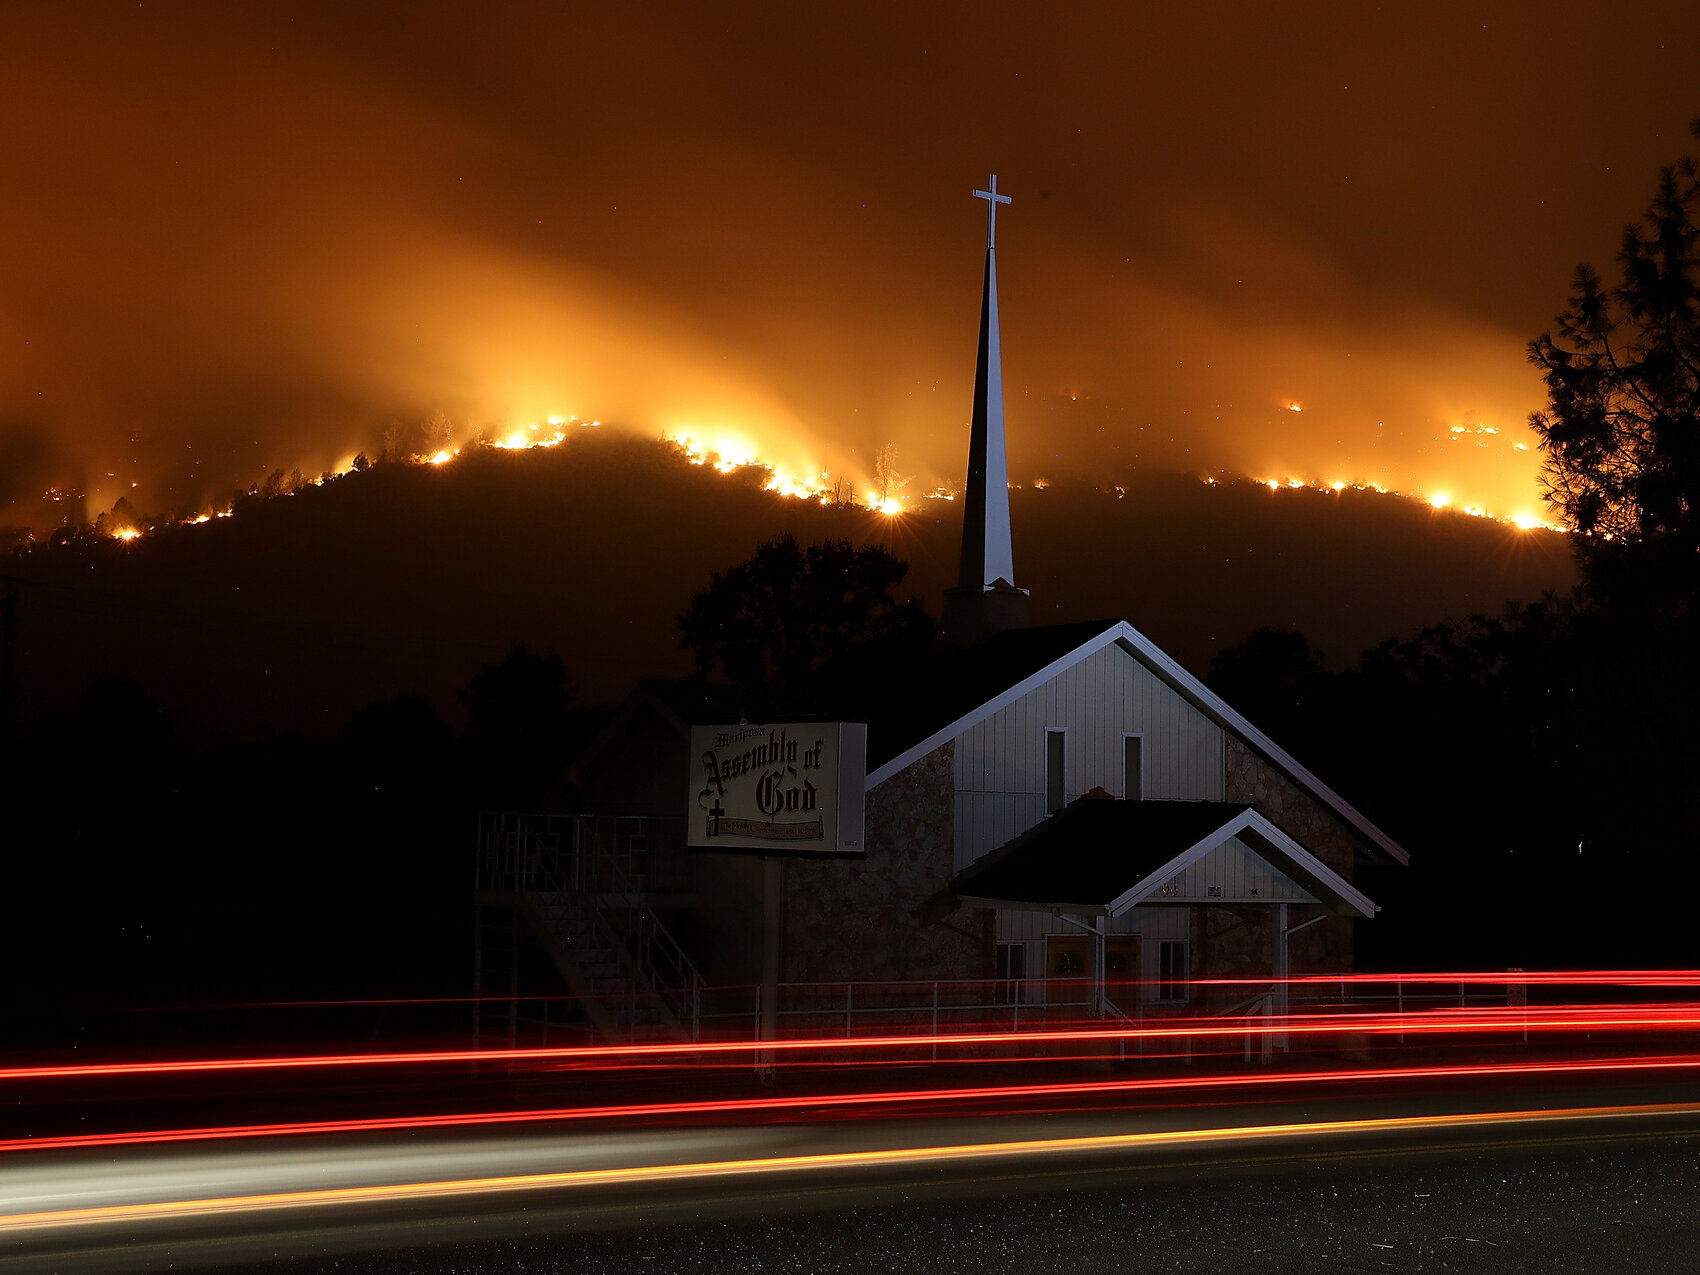 The Detwiler Fire burns in the hills above Mariposa on Tuesday. It has burned more than 45,000 acres and is just 7 percent contained, as of Wednesday morning local time.     (Justin Sullivan/Getty Images)